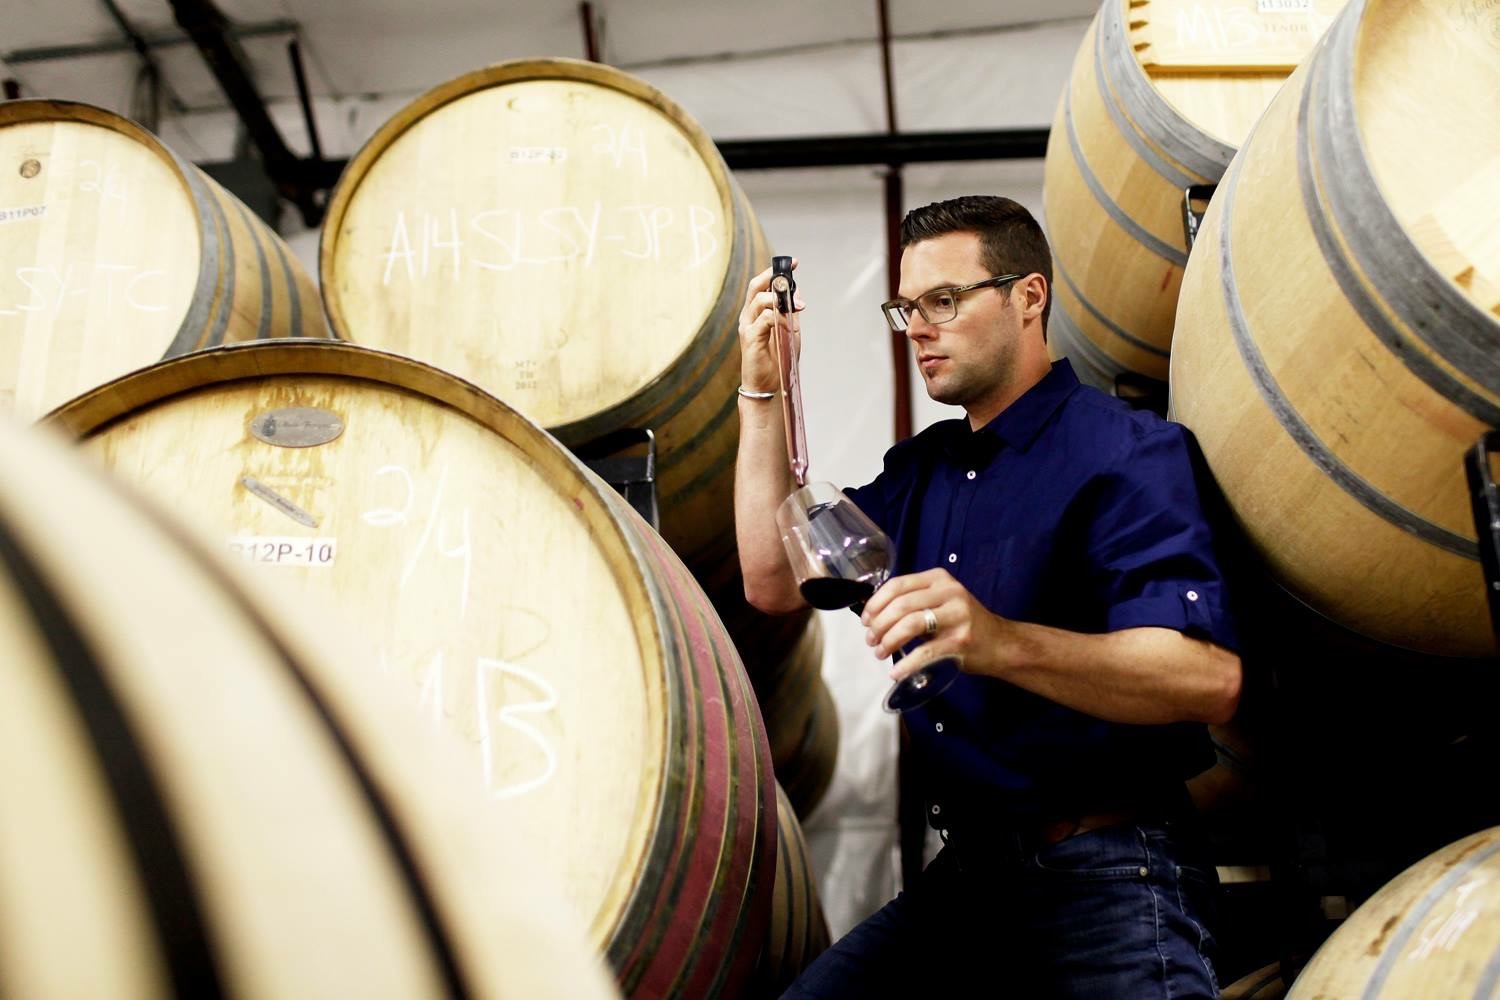 Superstar winemaker, Aryn Morell, and his wife, Edith, craft some gorgeous new wines for their namesake winery, Morell-Pena.